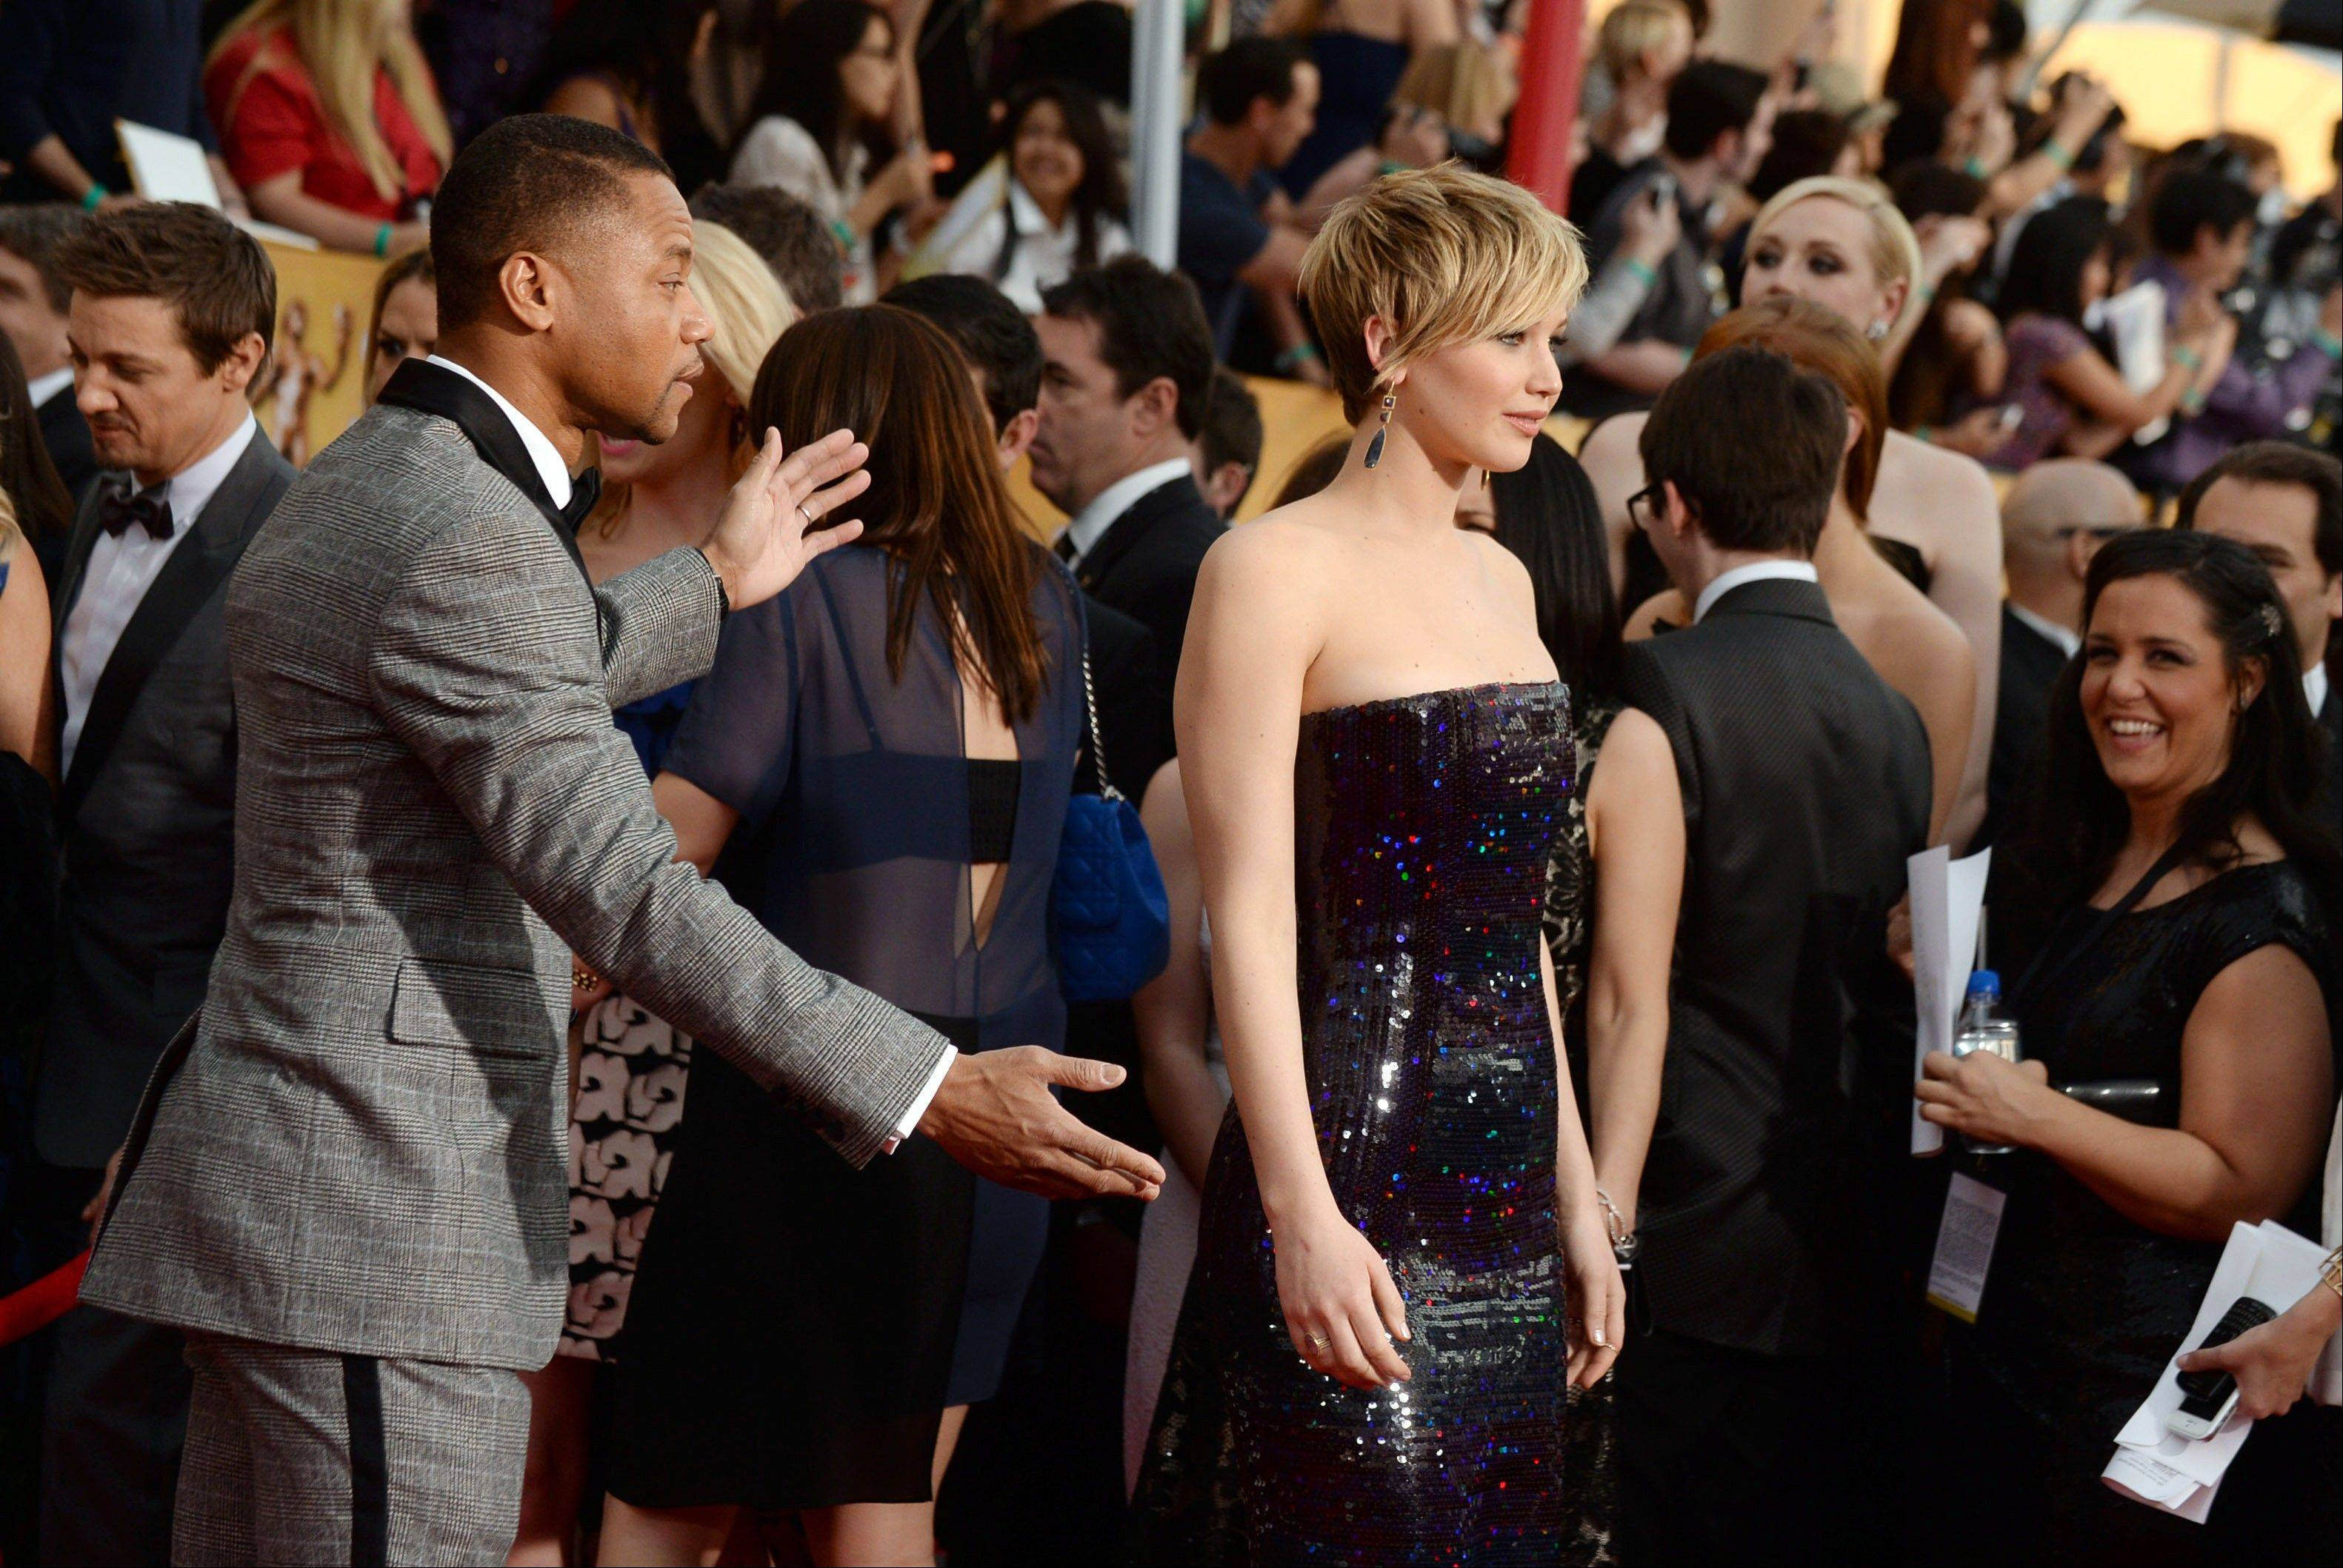 Cuba Gooding Jr., left, and Jennifer Lawrence make their way down the press line at the 20th annual Screen Actors Guild Awards.